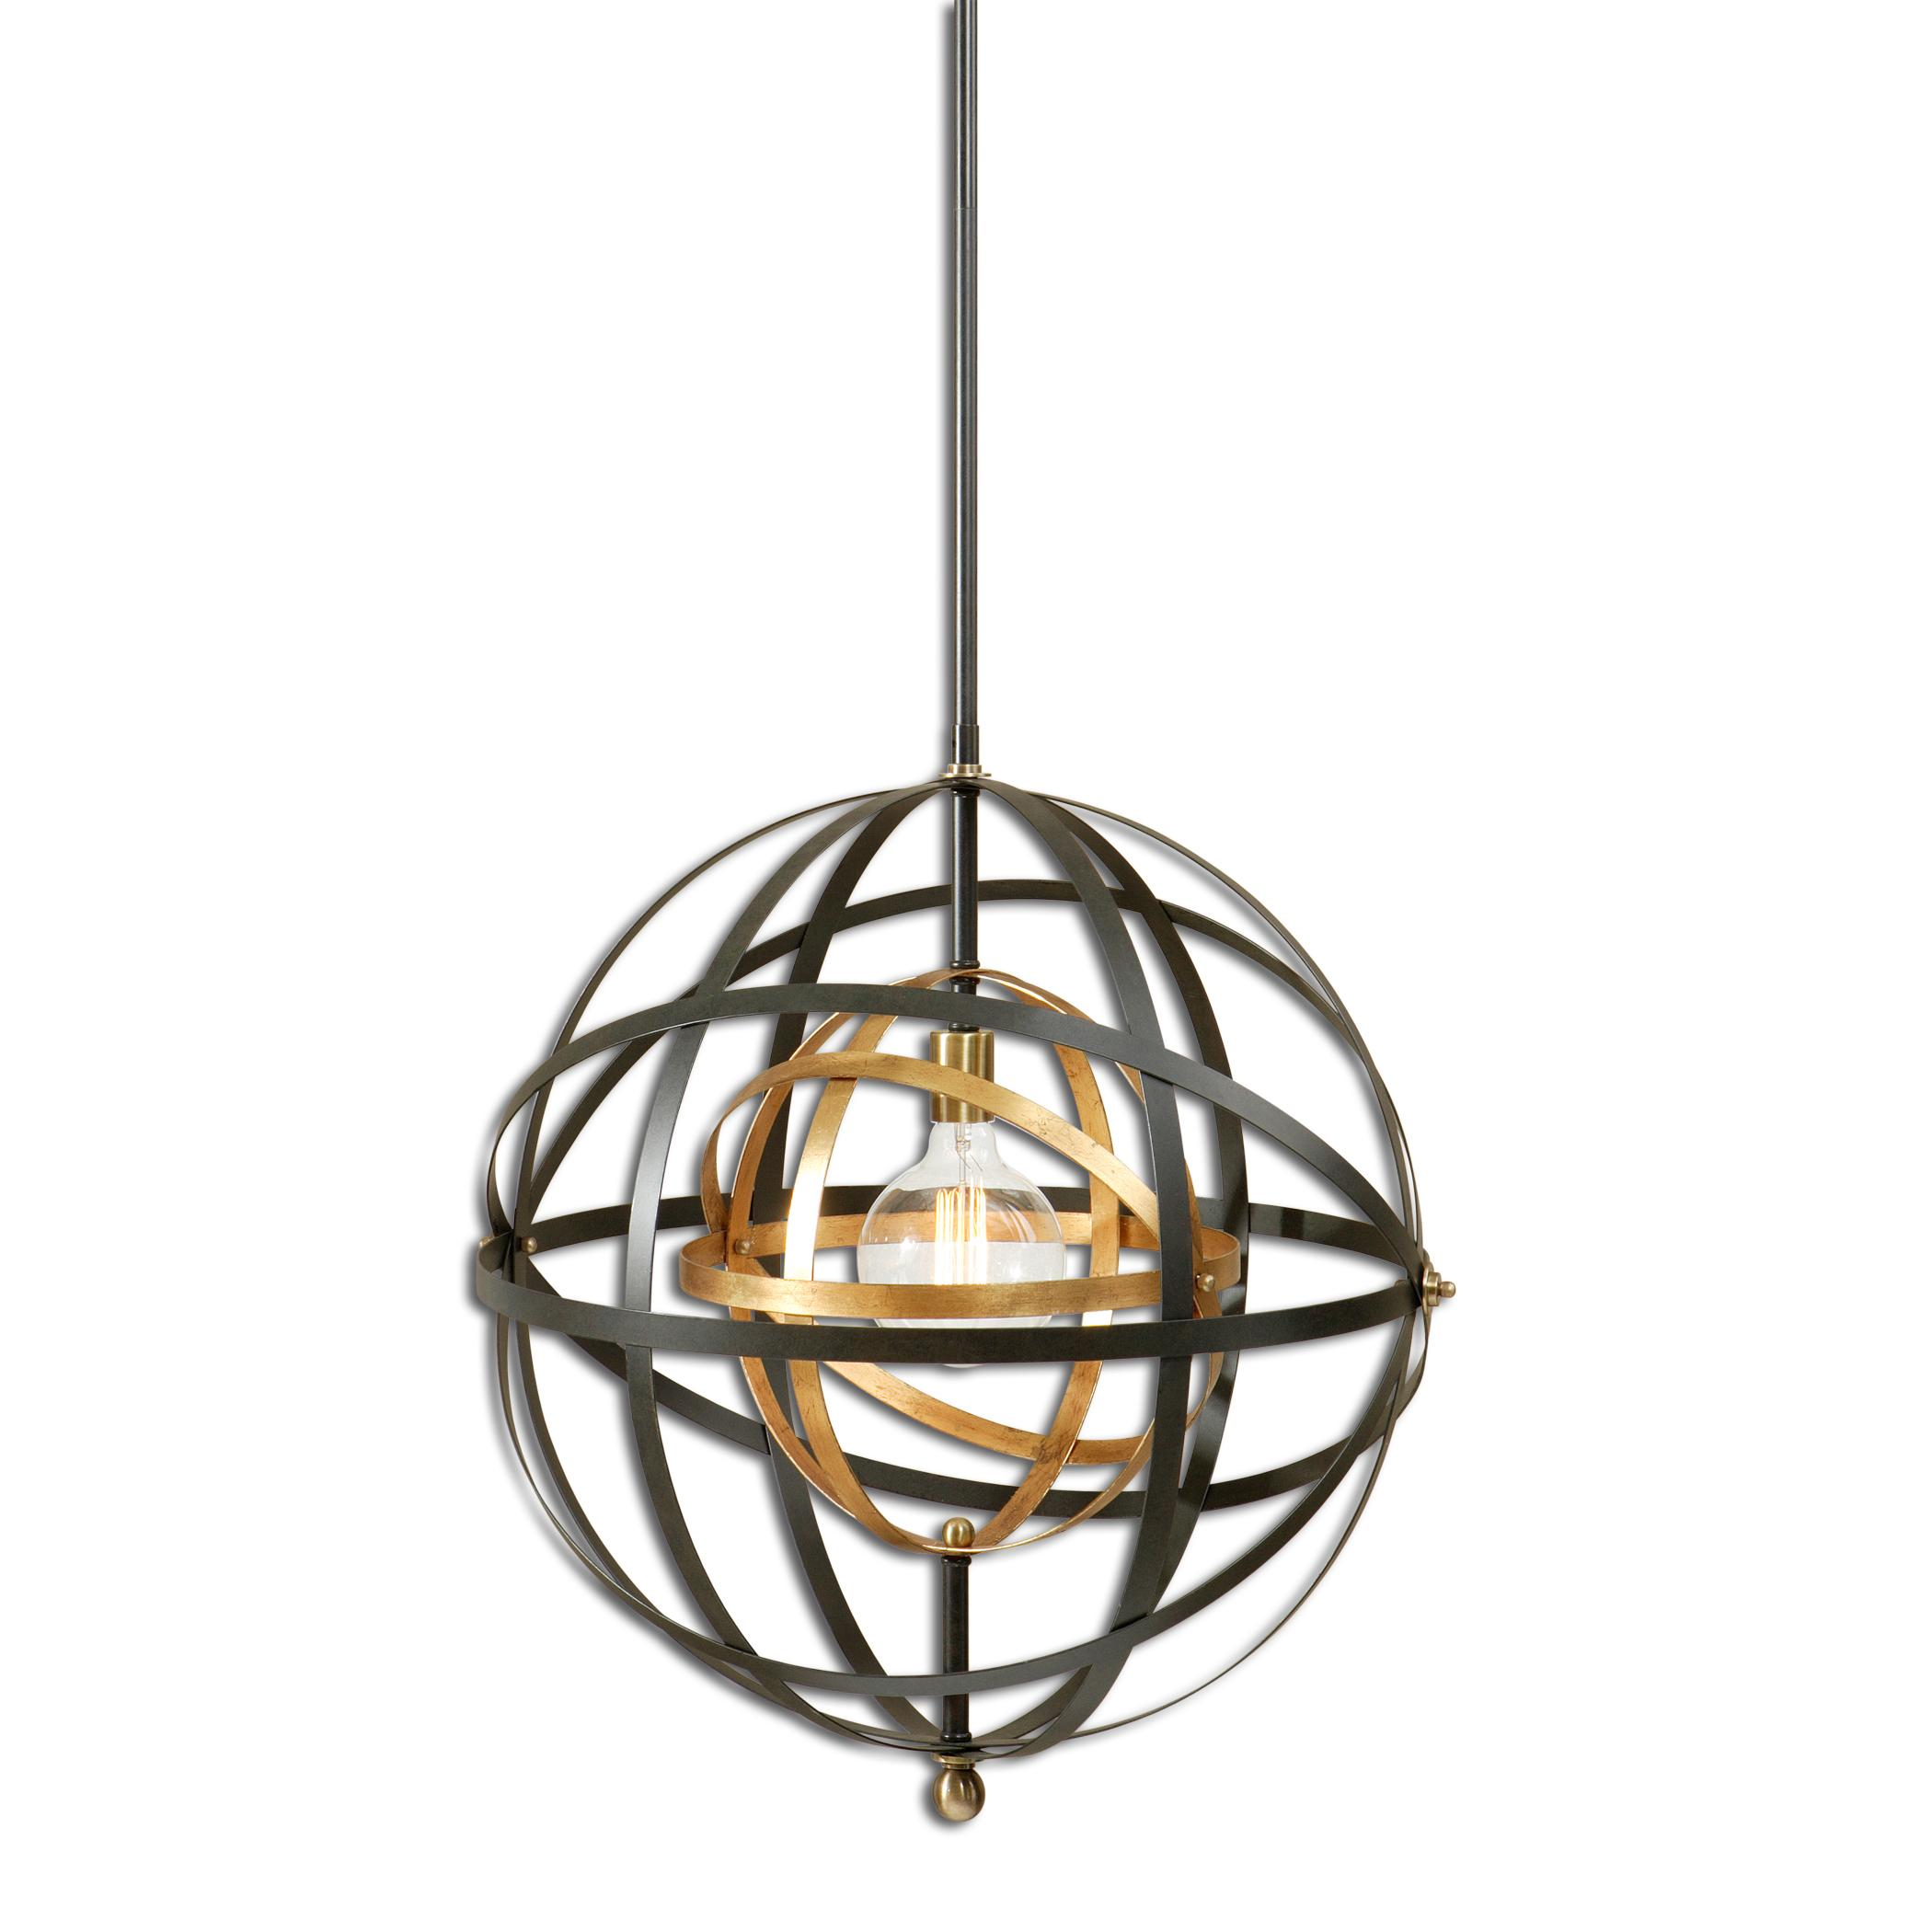 Uttermost Lighting Fixtures Rondure 1 Light Sphere Pendant - Item Number: 22038